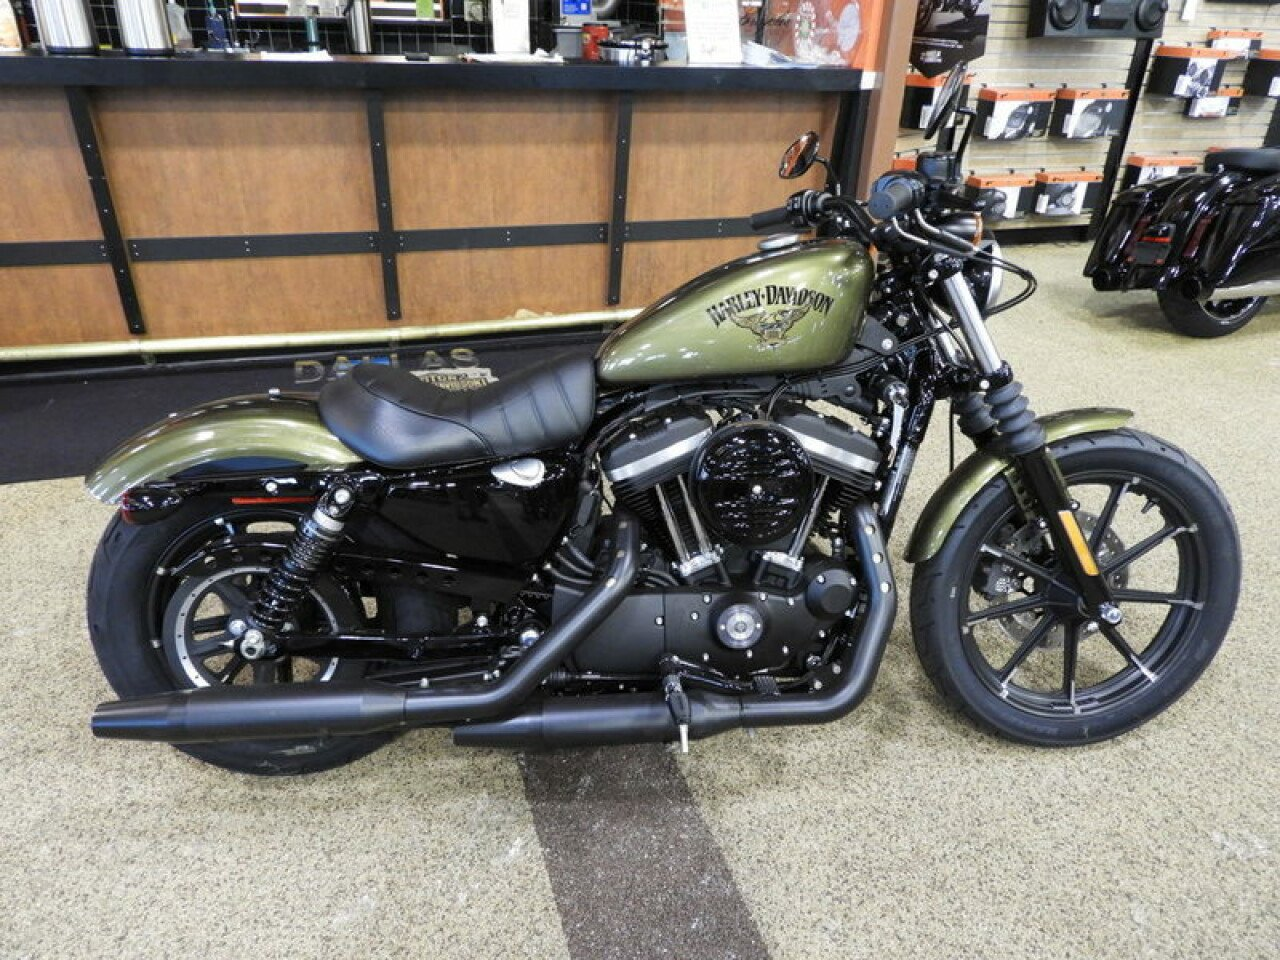 Harley Roadster For Sale San Diego >> Craigslist Motorcycles For Sale By Owner | Autos Post